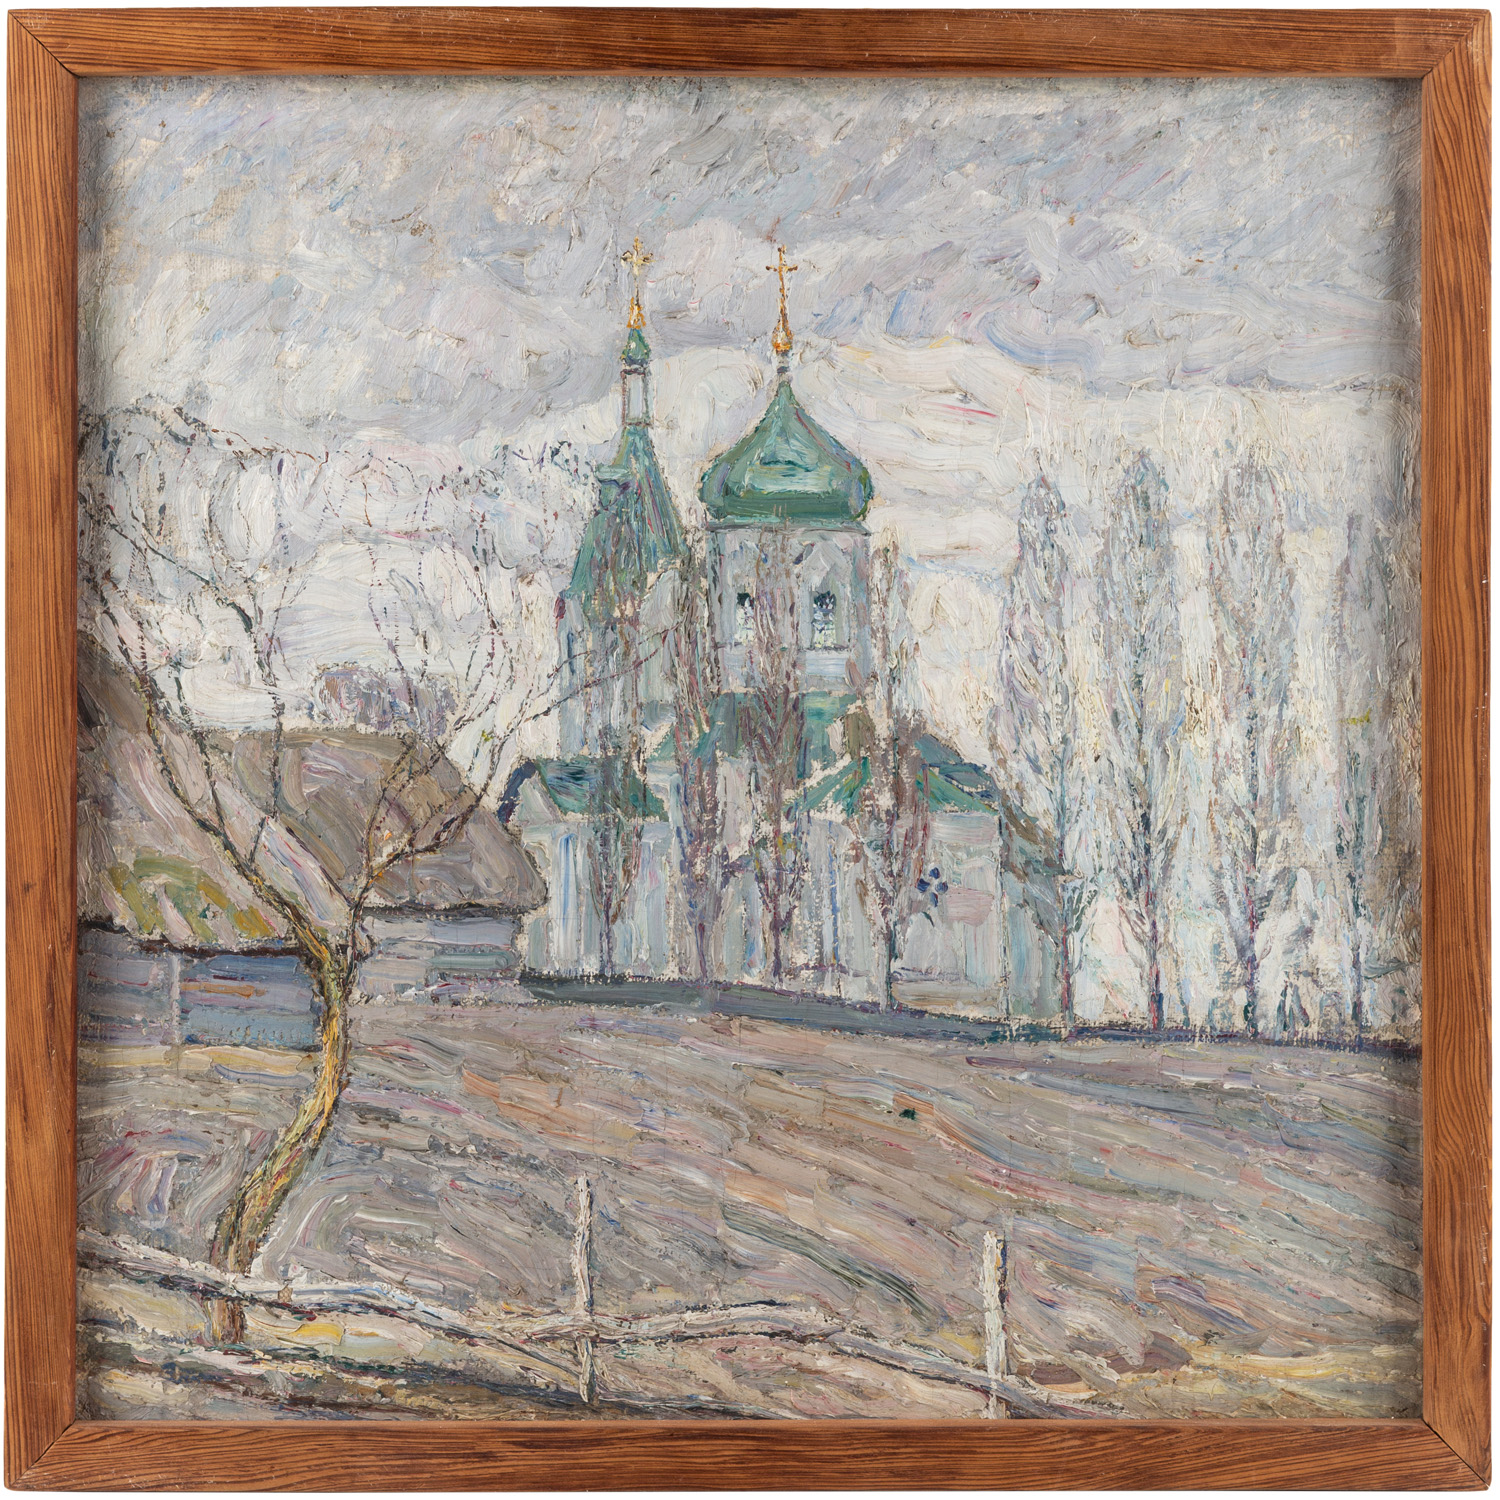 A DOUBLE-SIDED LANDSCAPE PAINTING BY ABRAHAM MANIEVICH (RUSSIAN 1883-1942) - Image 4 of 5